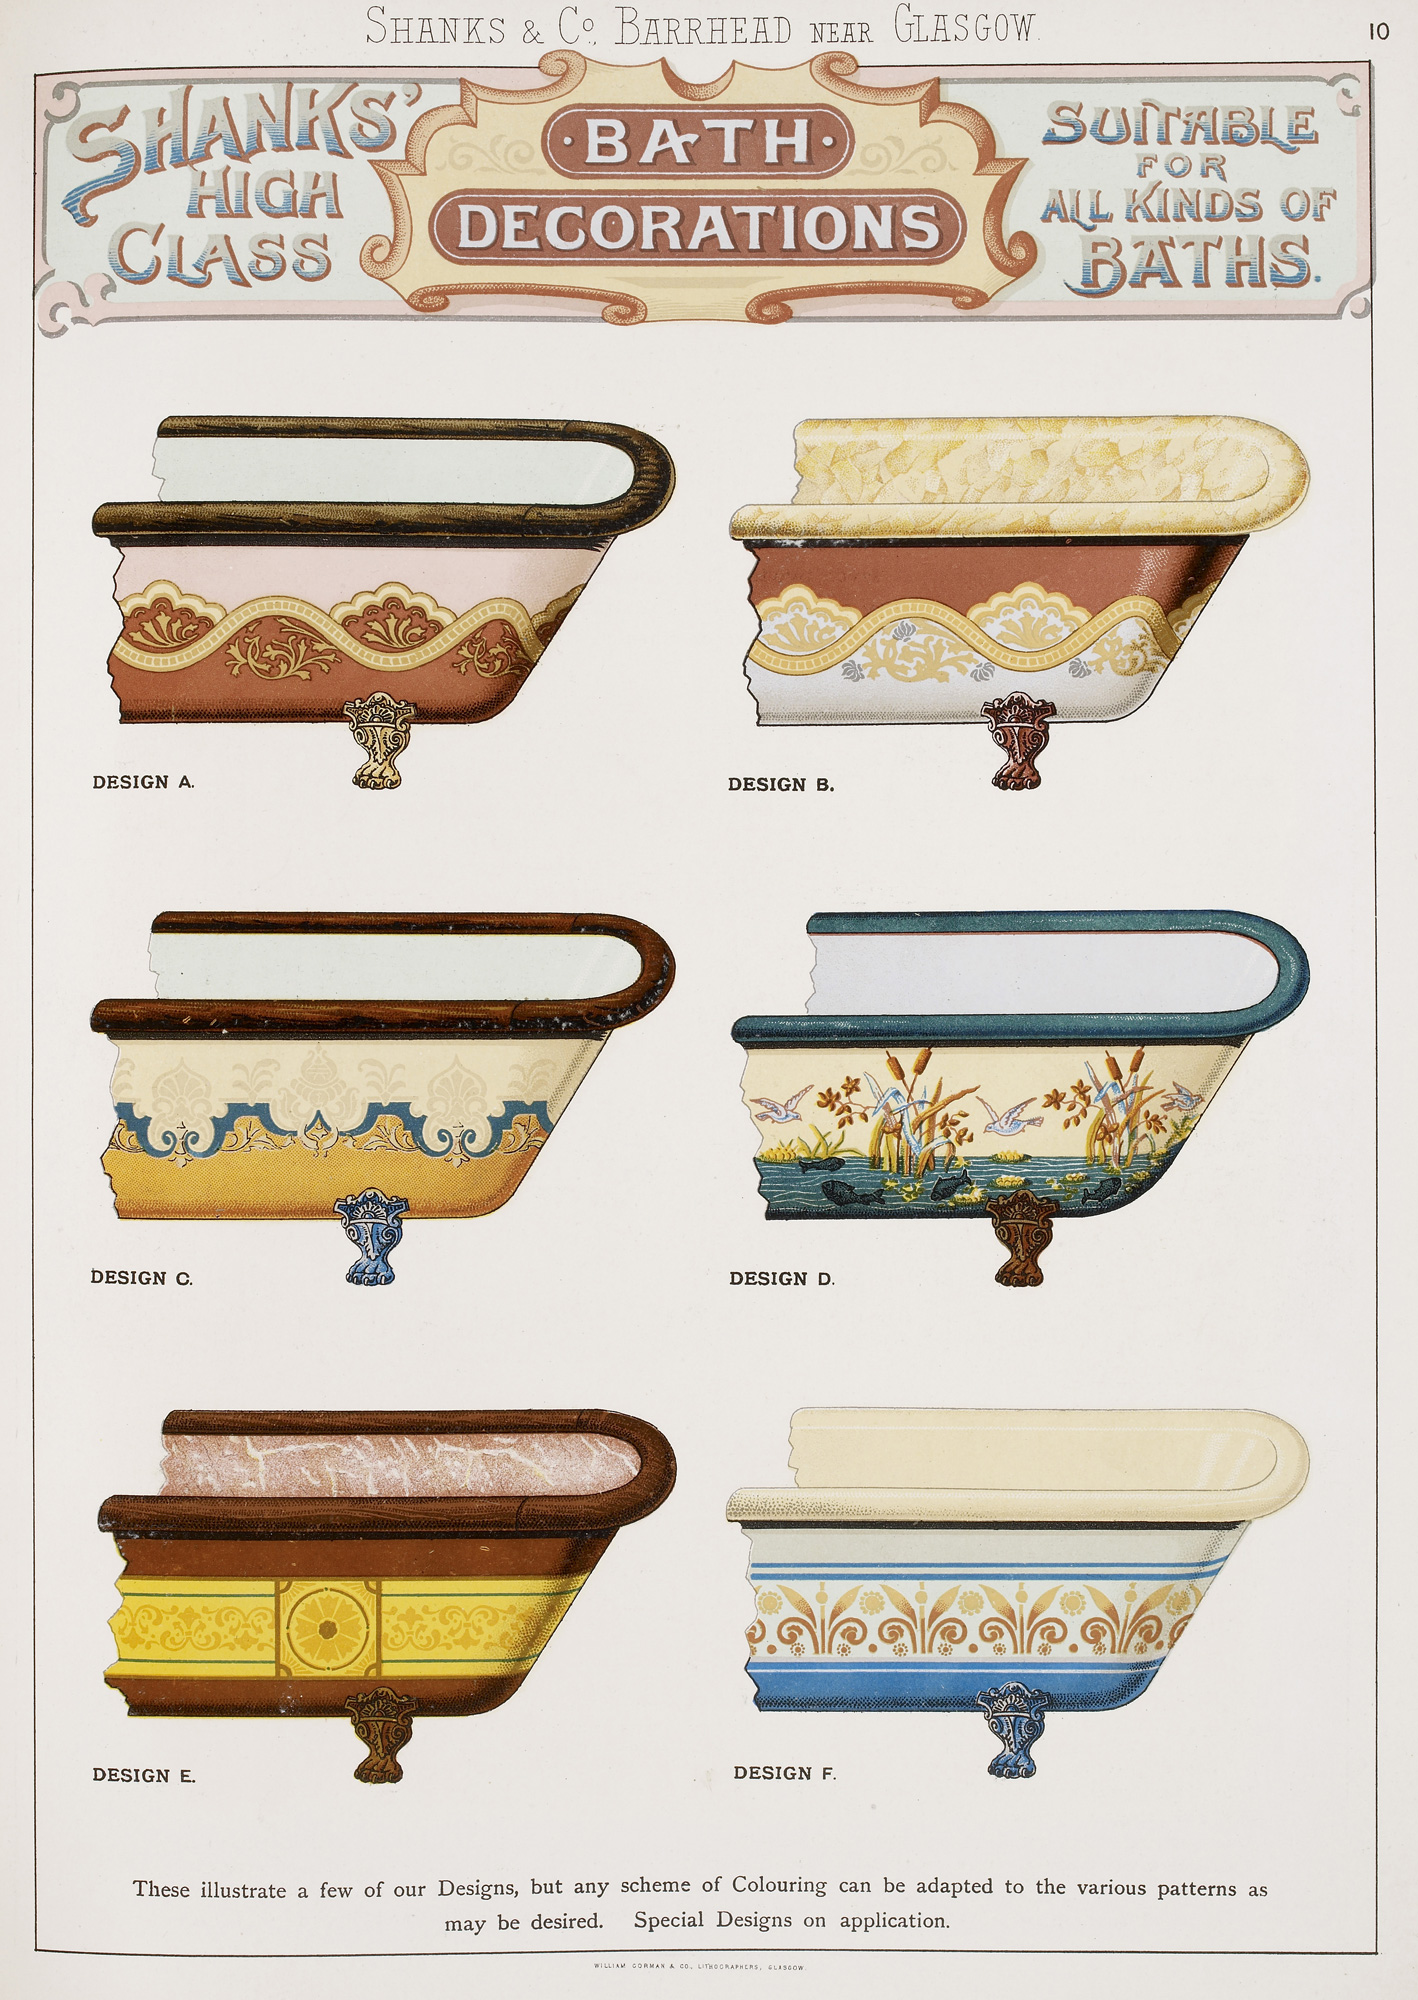 Advertisement for designer baths from Shanks & Co.